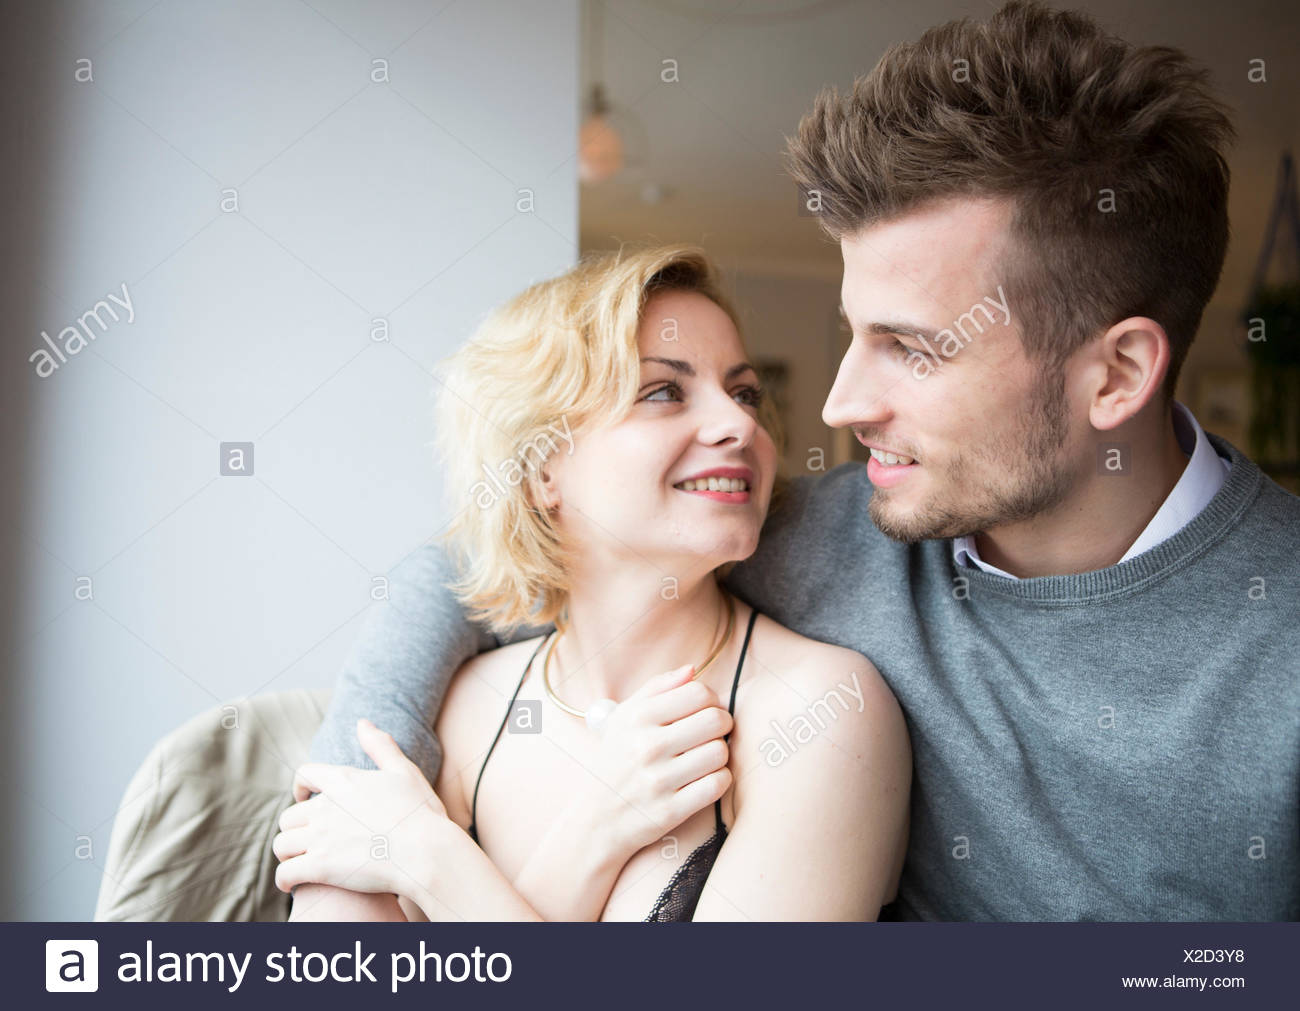 Happy young couple looking at each other in cafe - Stock Image